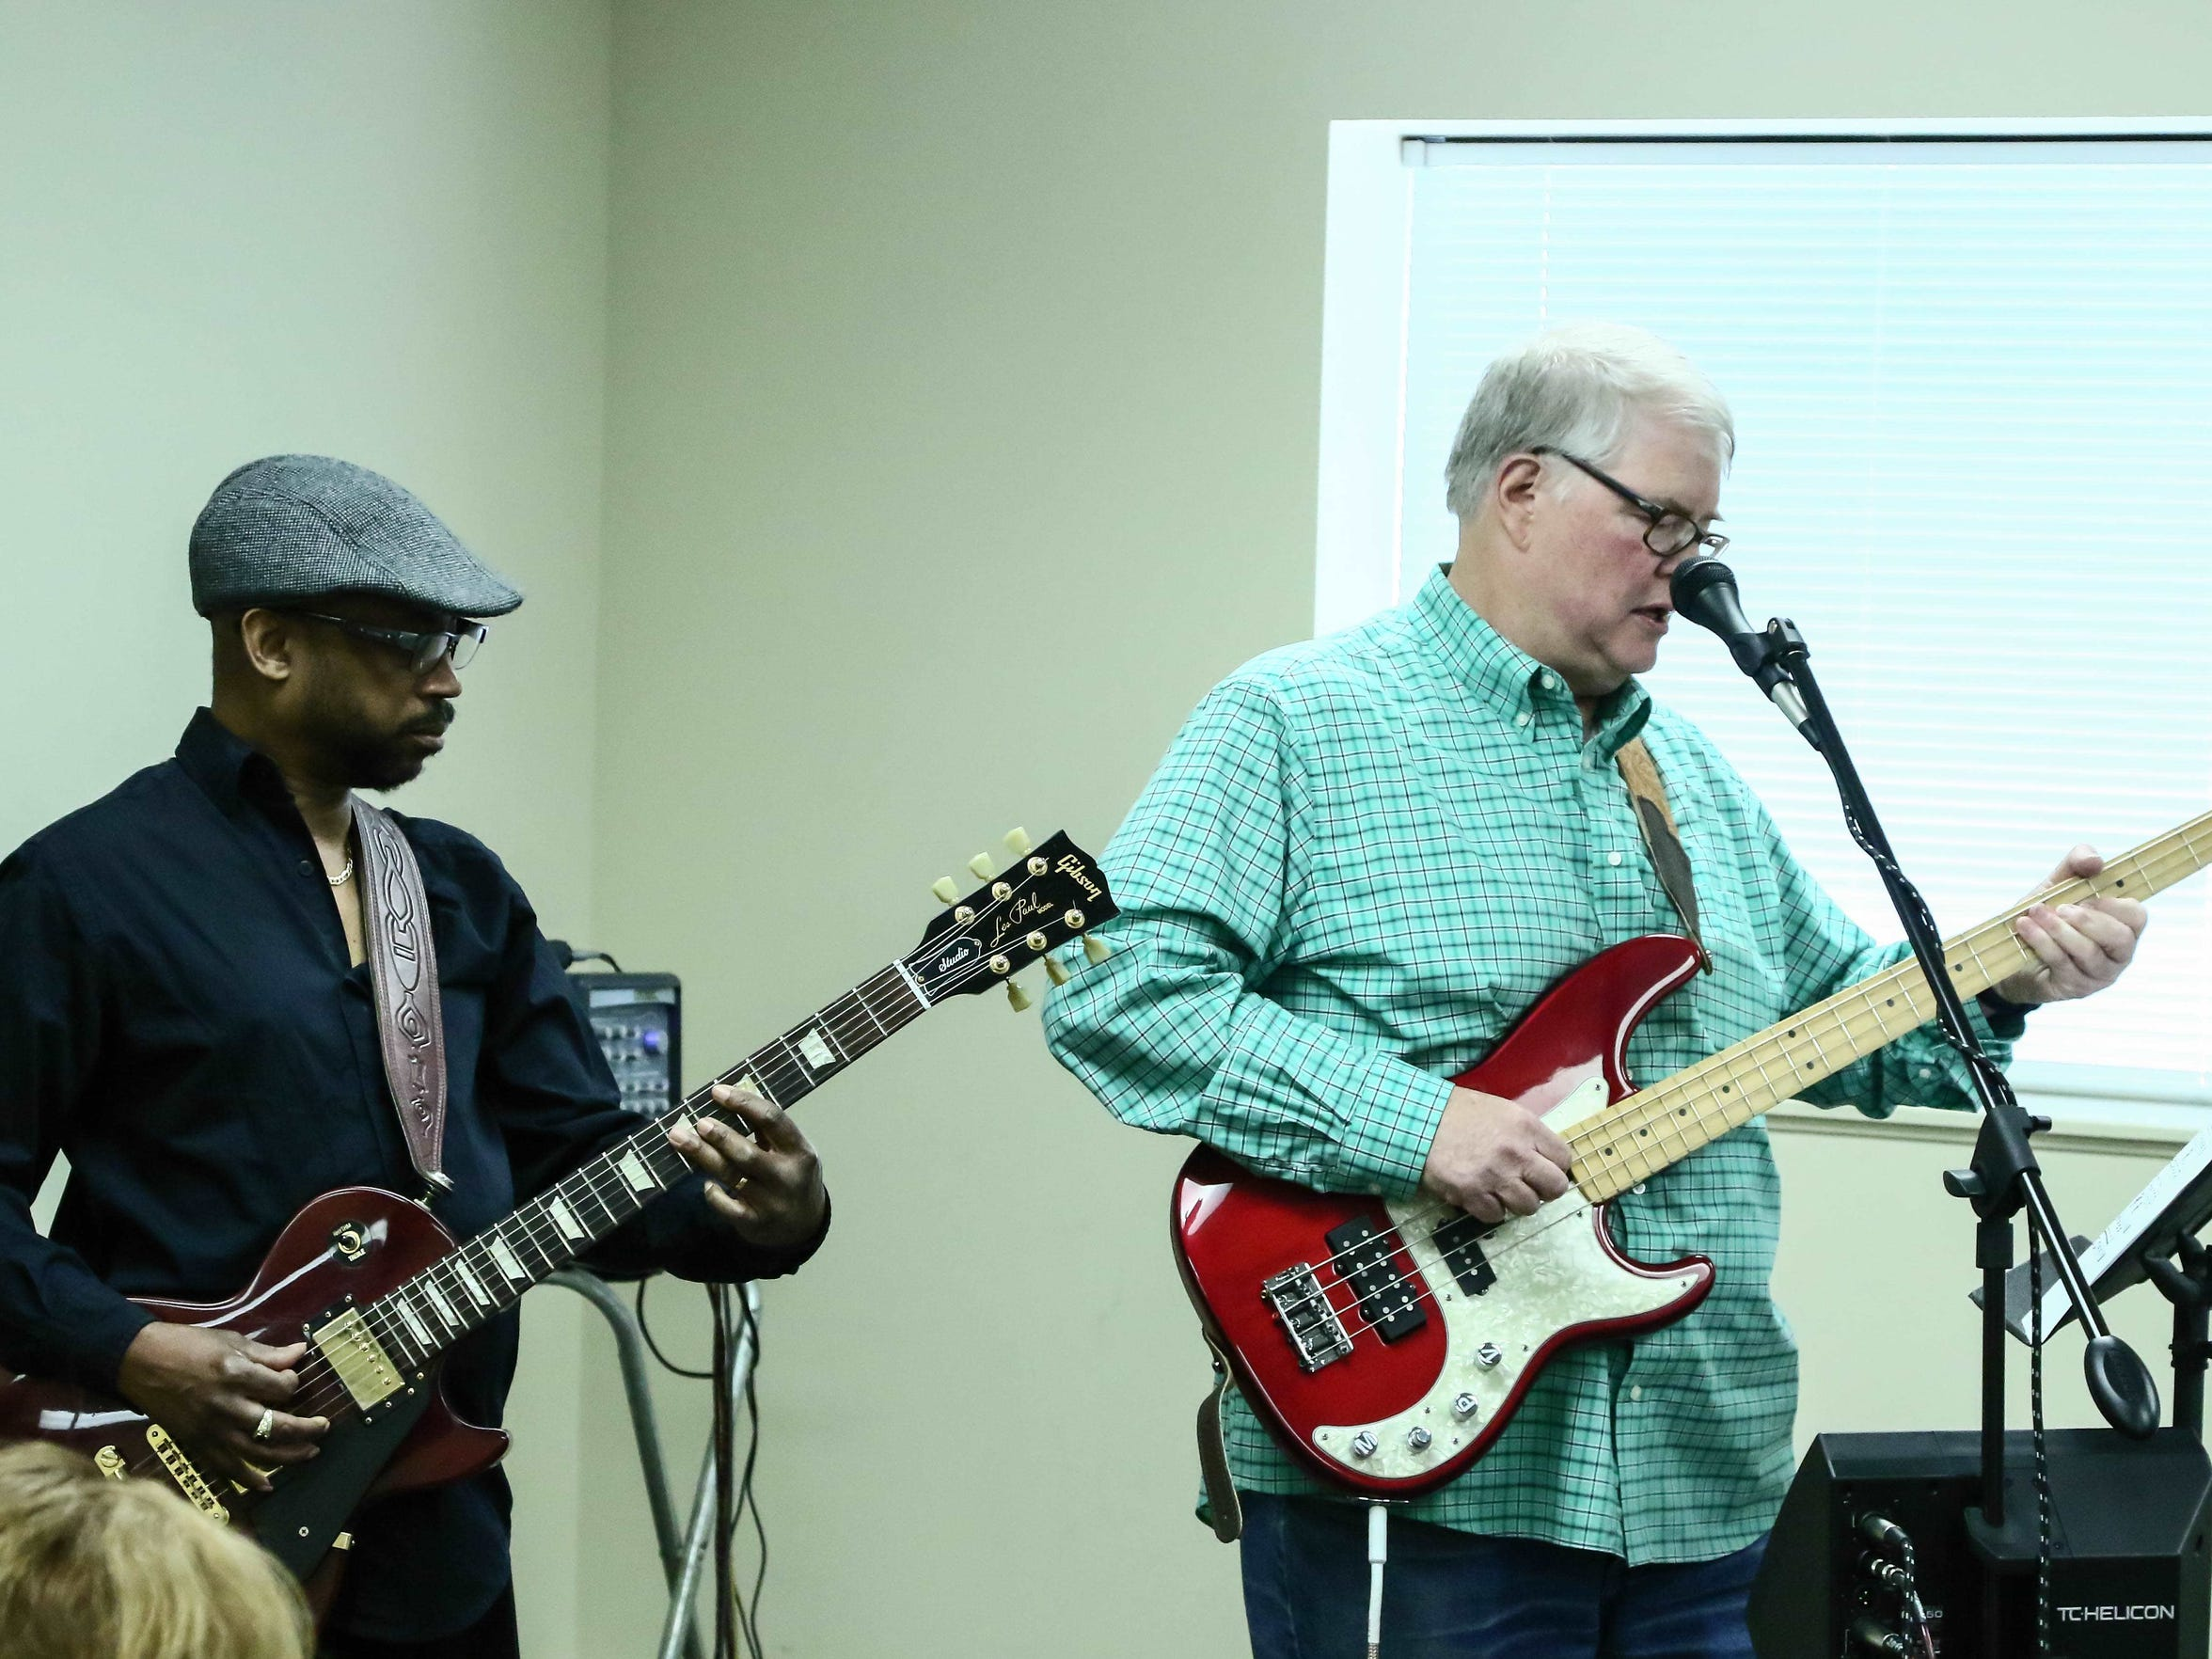 Stroke survivors Don Mann, right, and Lewis Lott, left, perform a guitar concert Friday, May 20, 2016.